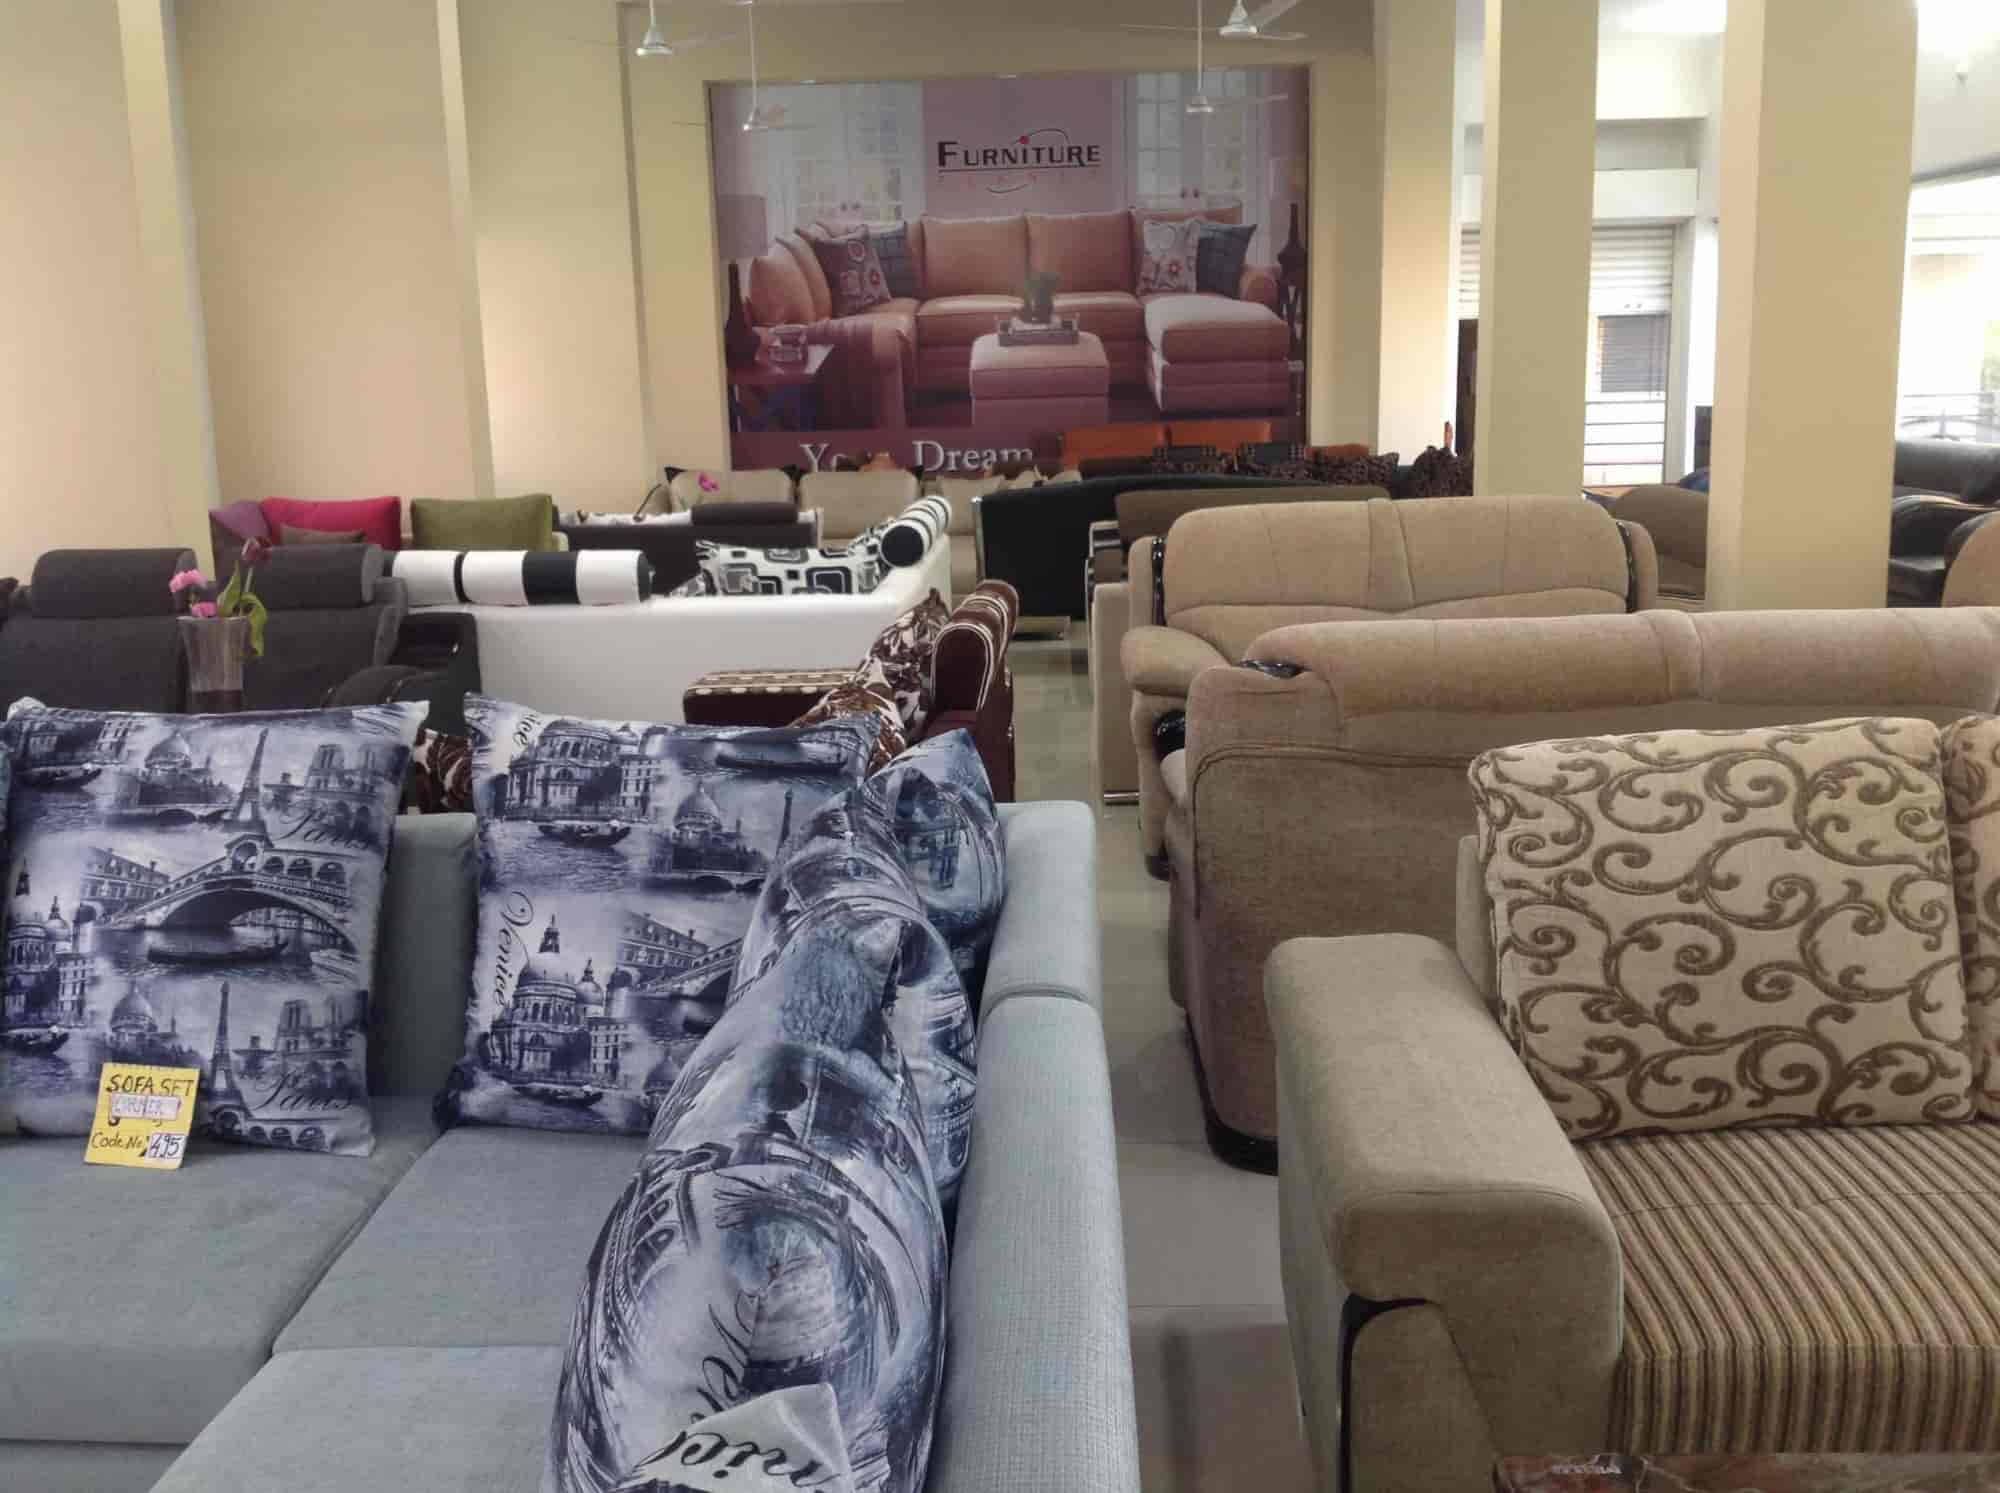 Sofa Olx Amravati Furniture Planet Furniture Dealers In Amravati Justdial